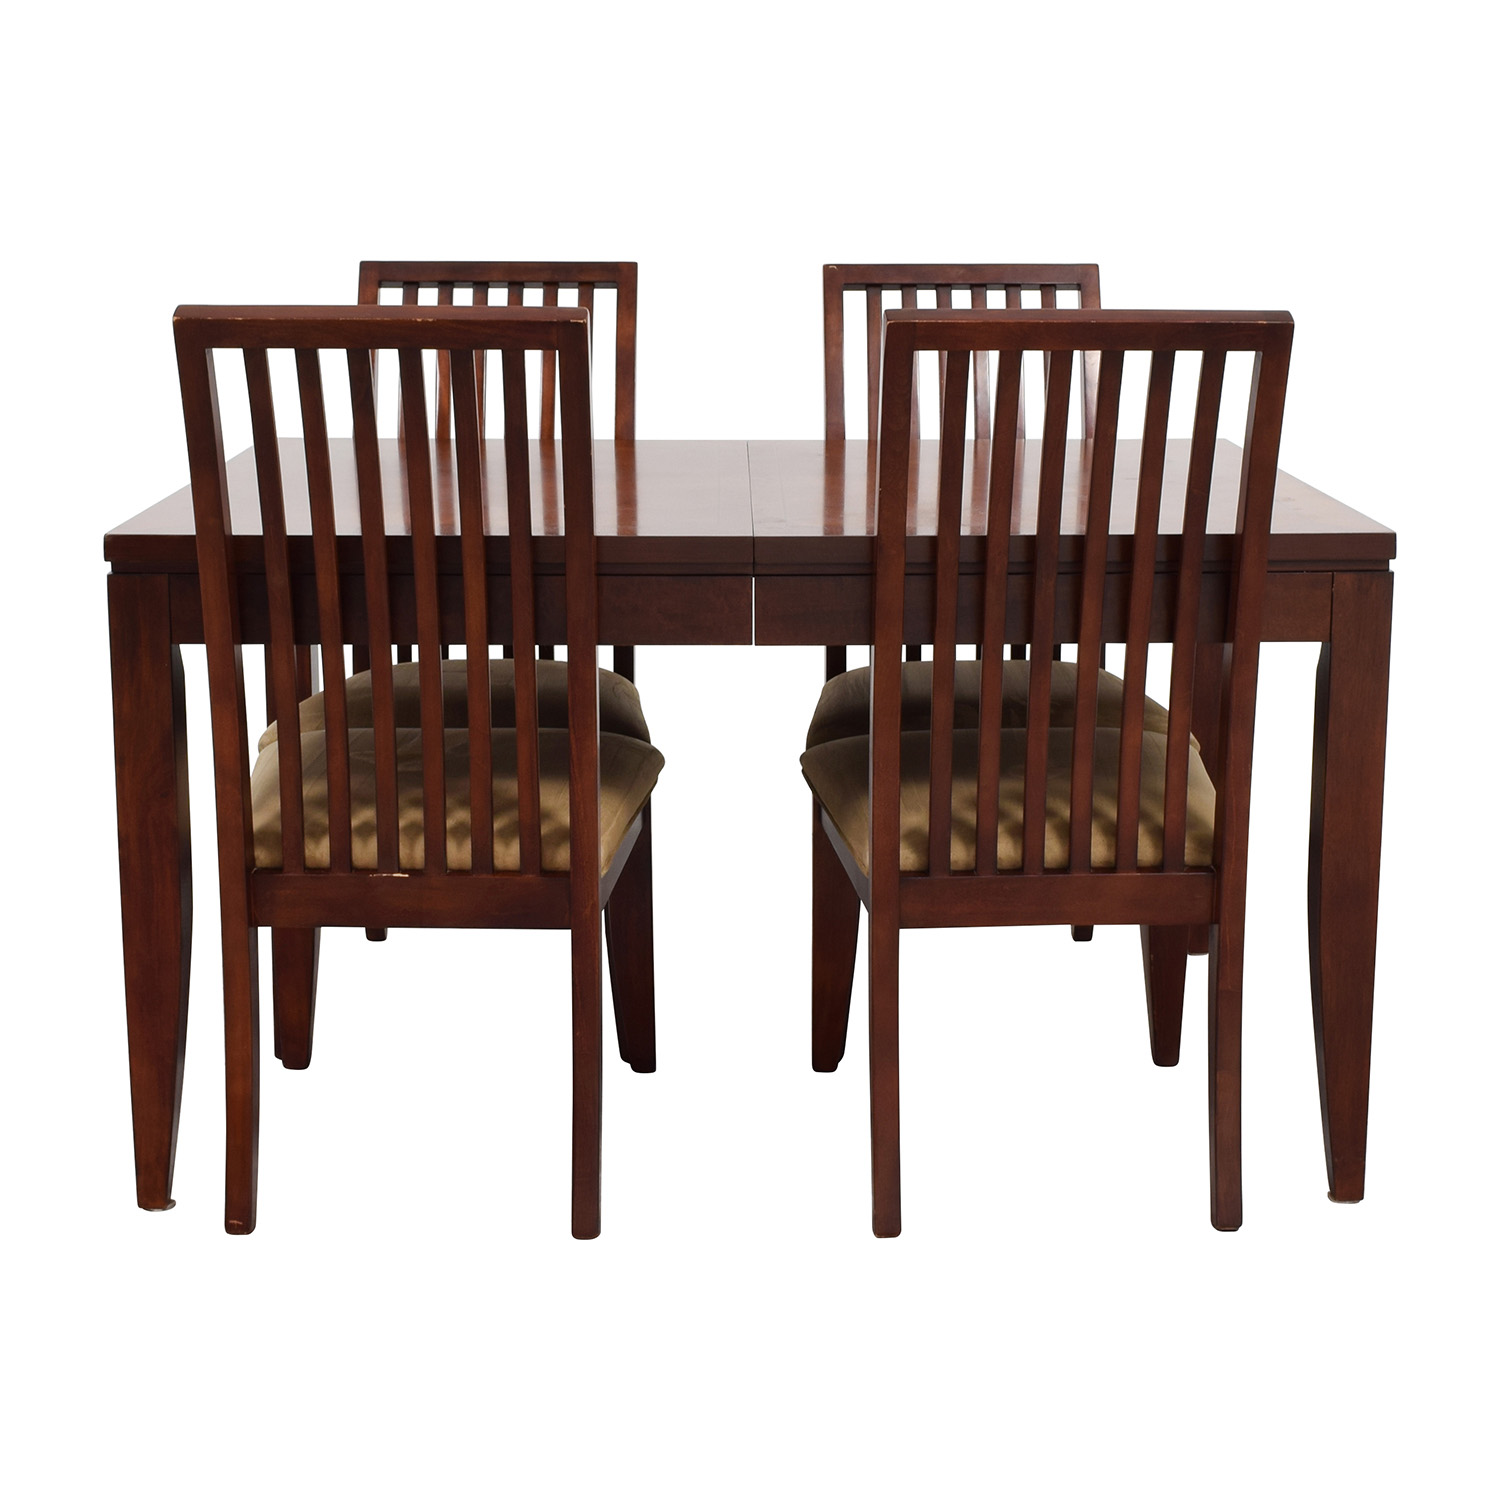 Macys Macys Metropolitan Dining Set with Four Chairs coupon